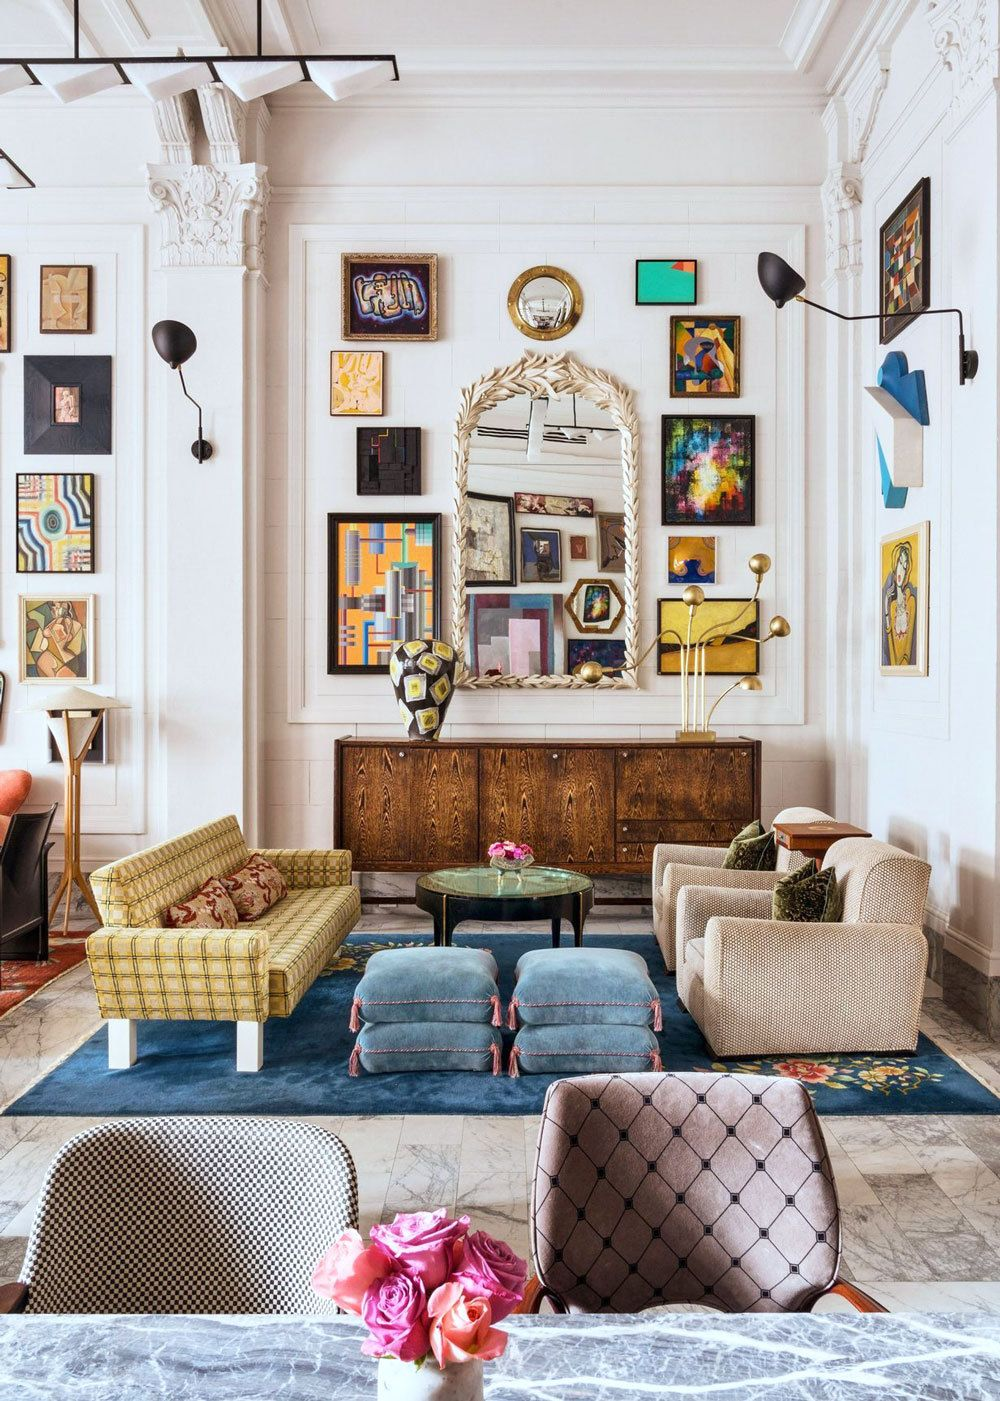 This Living Room Is The Quintessential Artful Eclectic Interior It Mixes High And Low Priced Furniture Acc Eclectic Living Room Eclectic Home Eclectic Decor